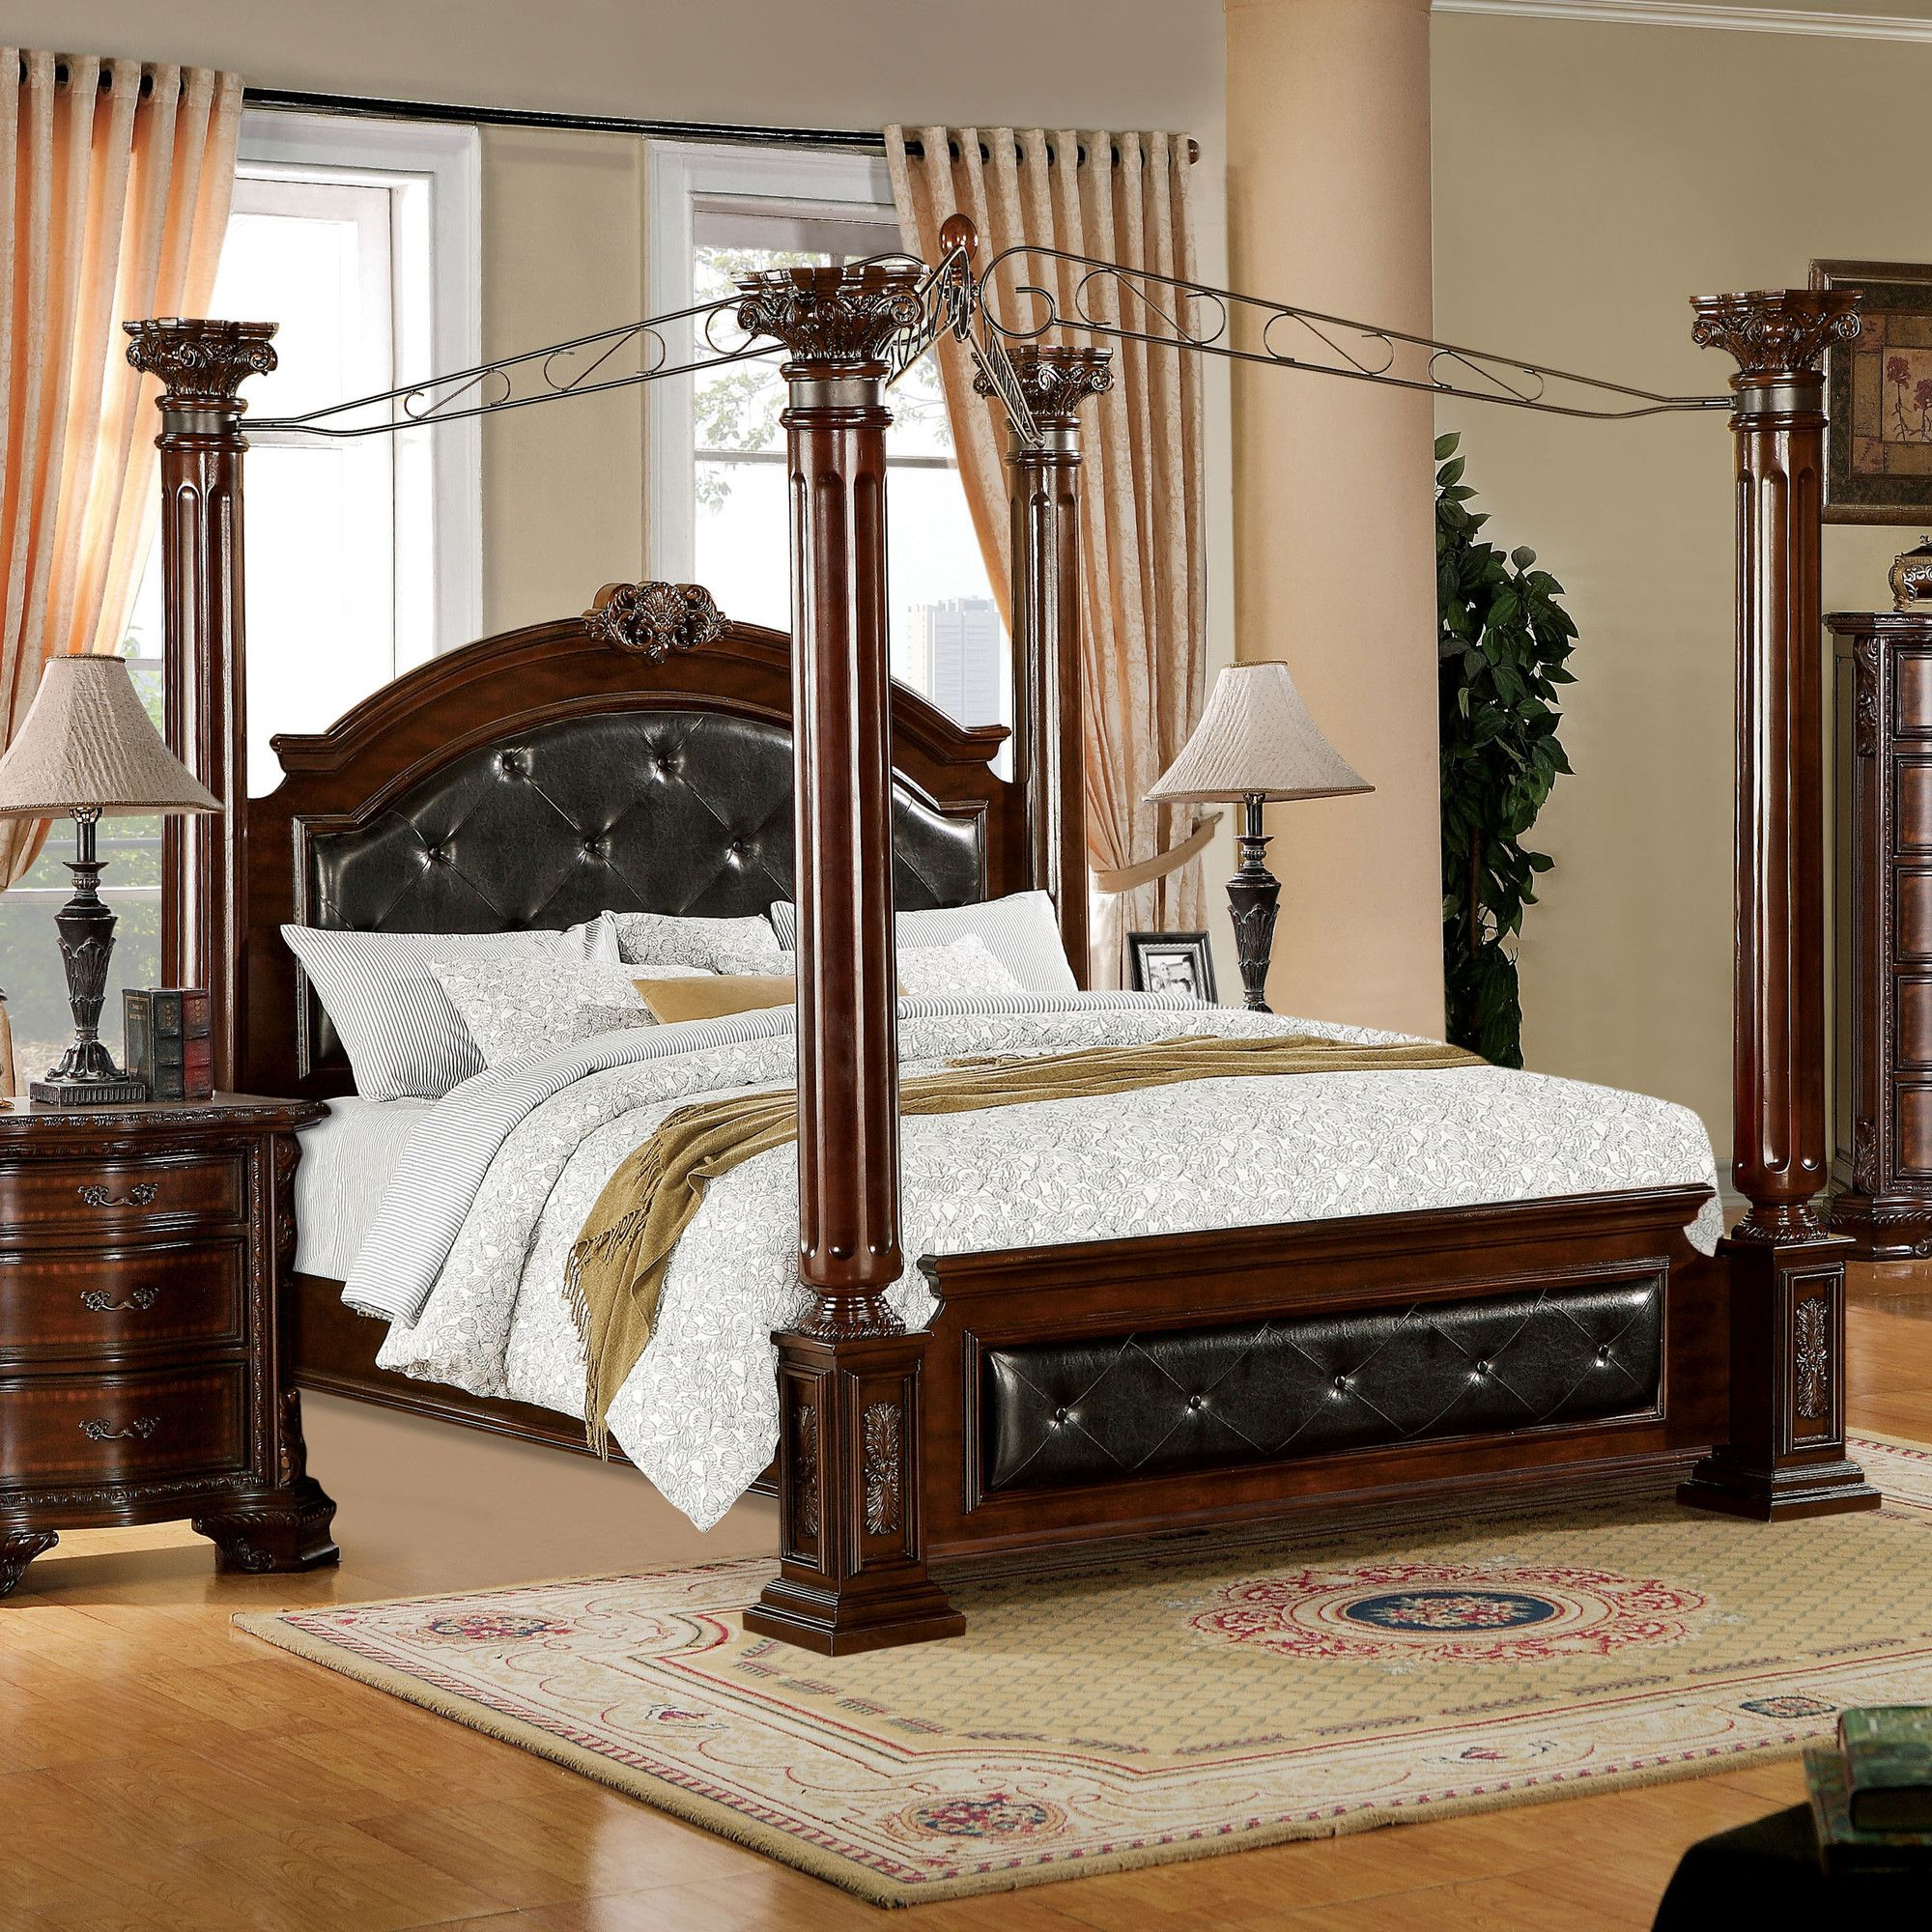 Edmore Upholstered Canopy Bed Canopy bedroom sets